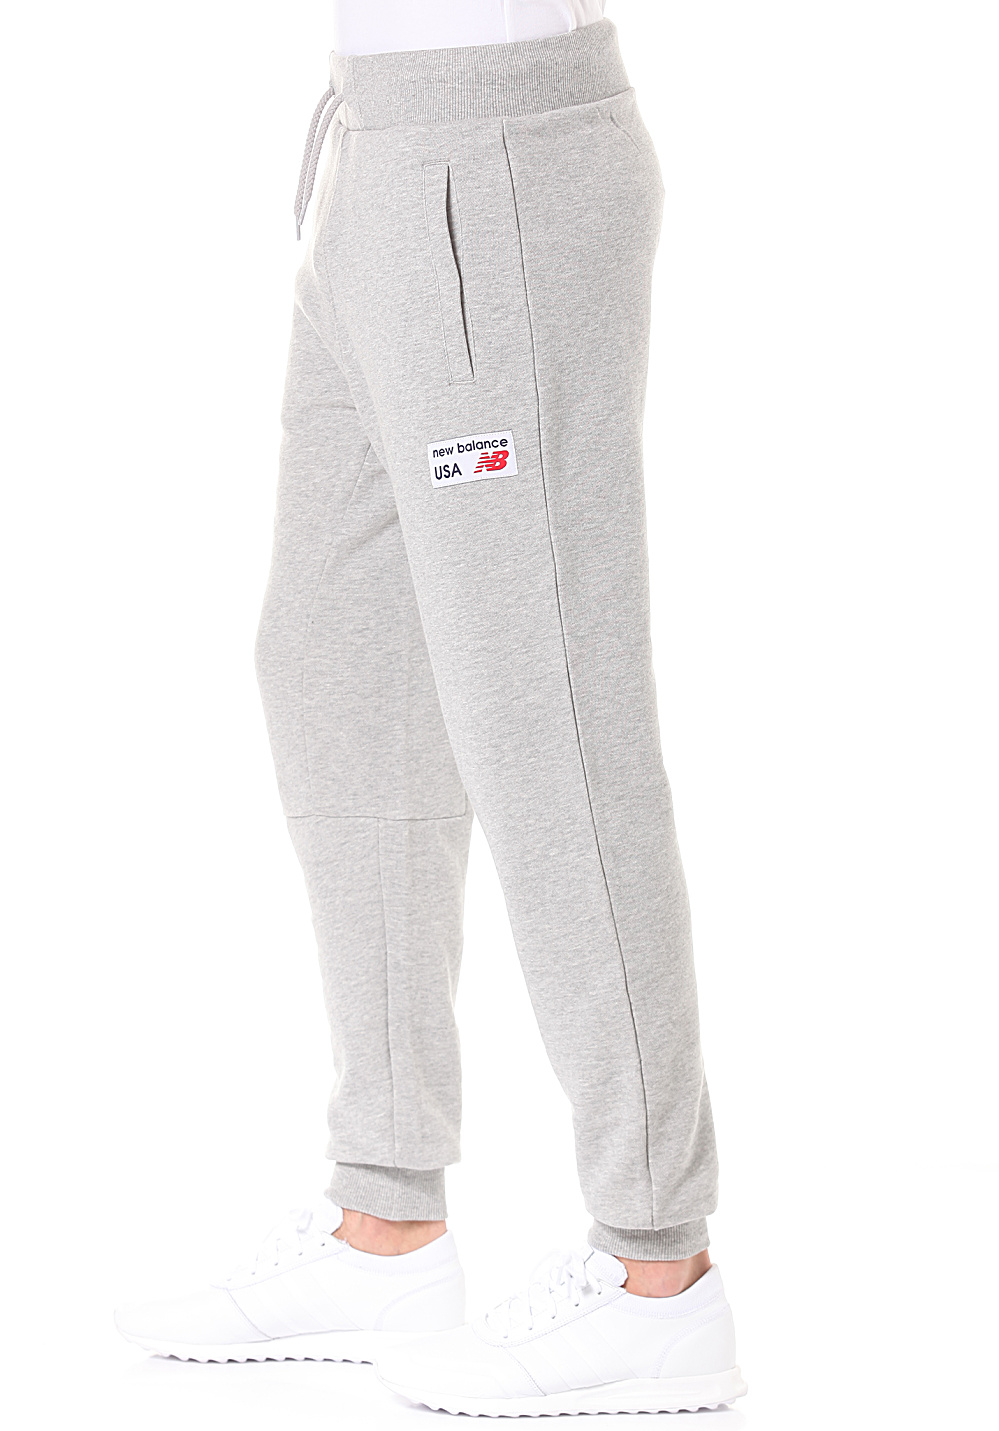 new product 57c23 4effe new-balance-emp53709-pantalon-de-survetement-hommes-gris.jpg